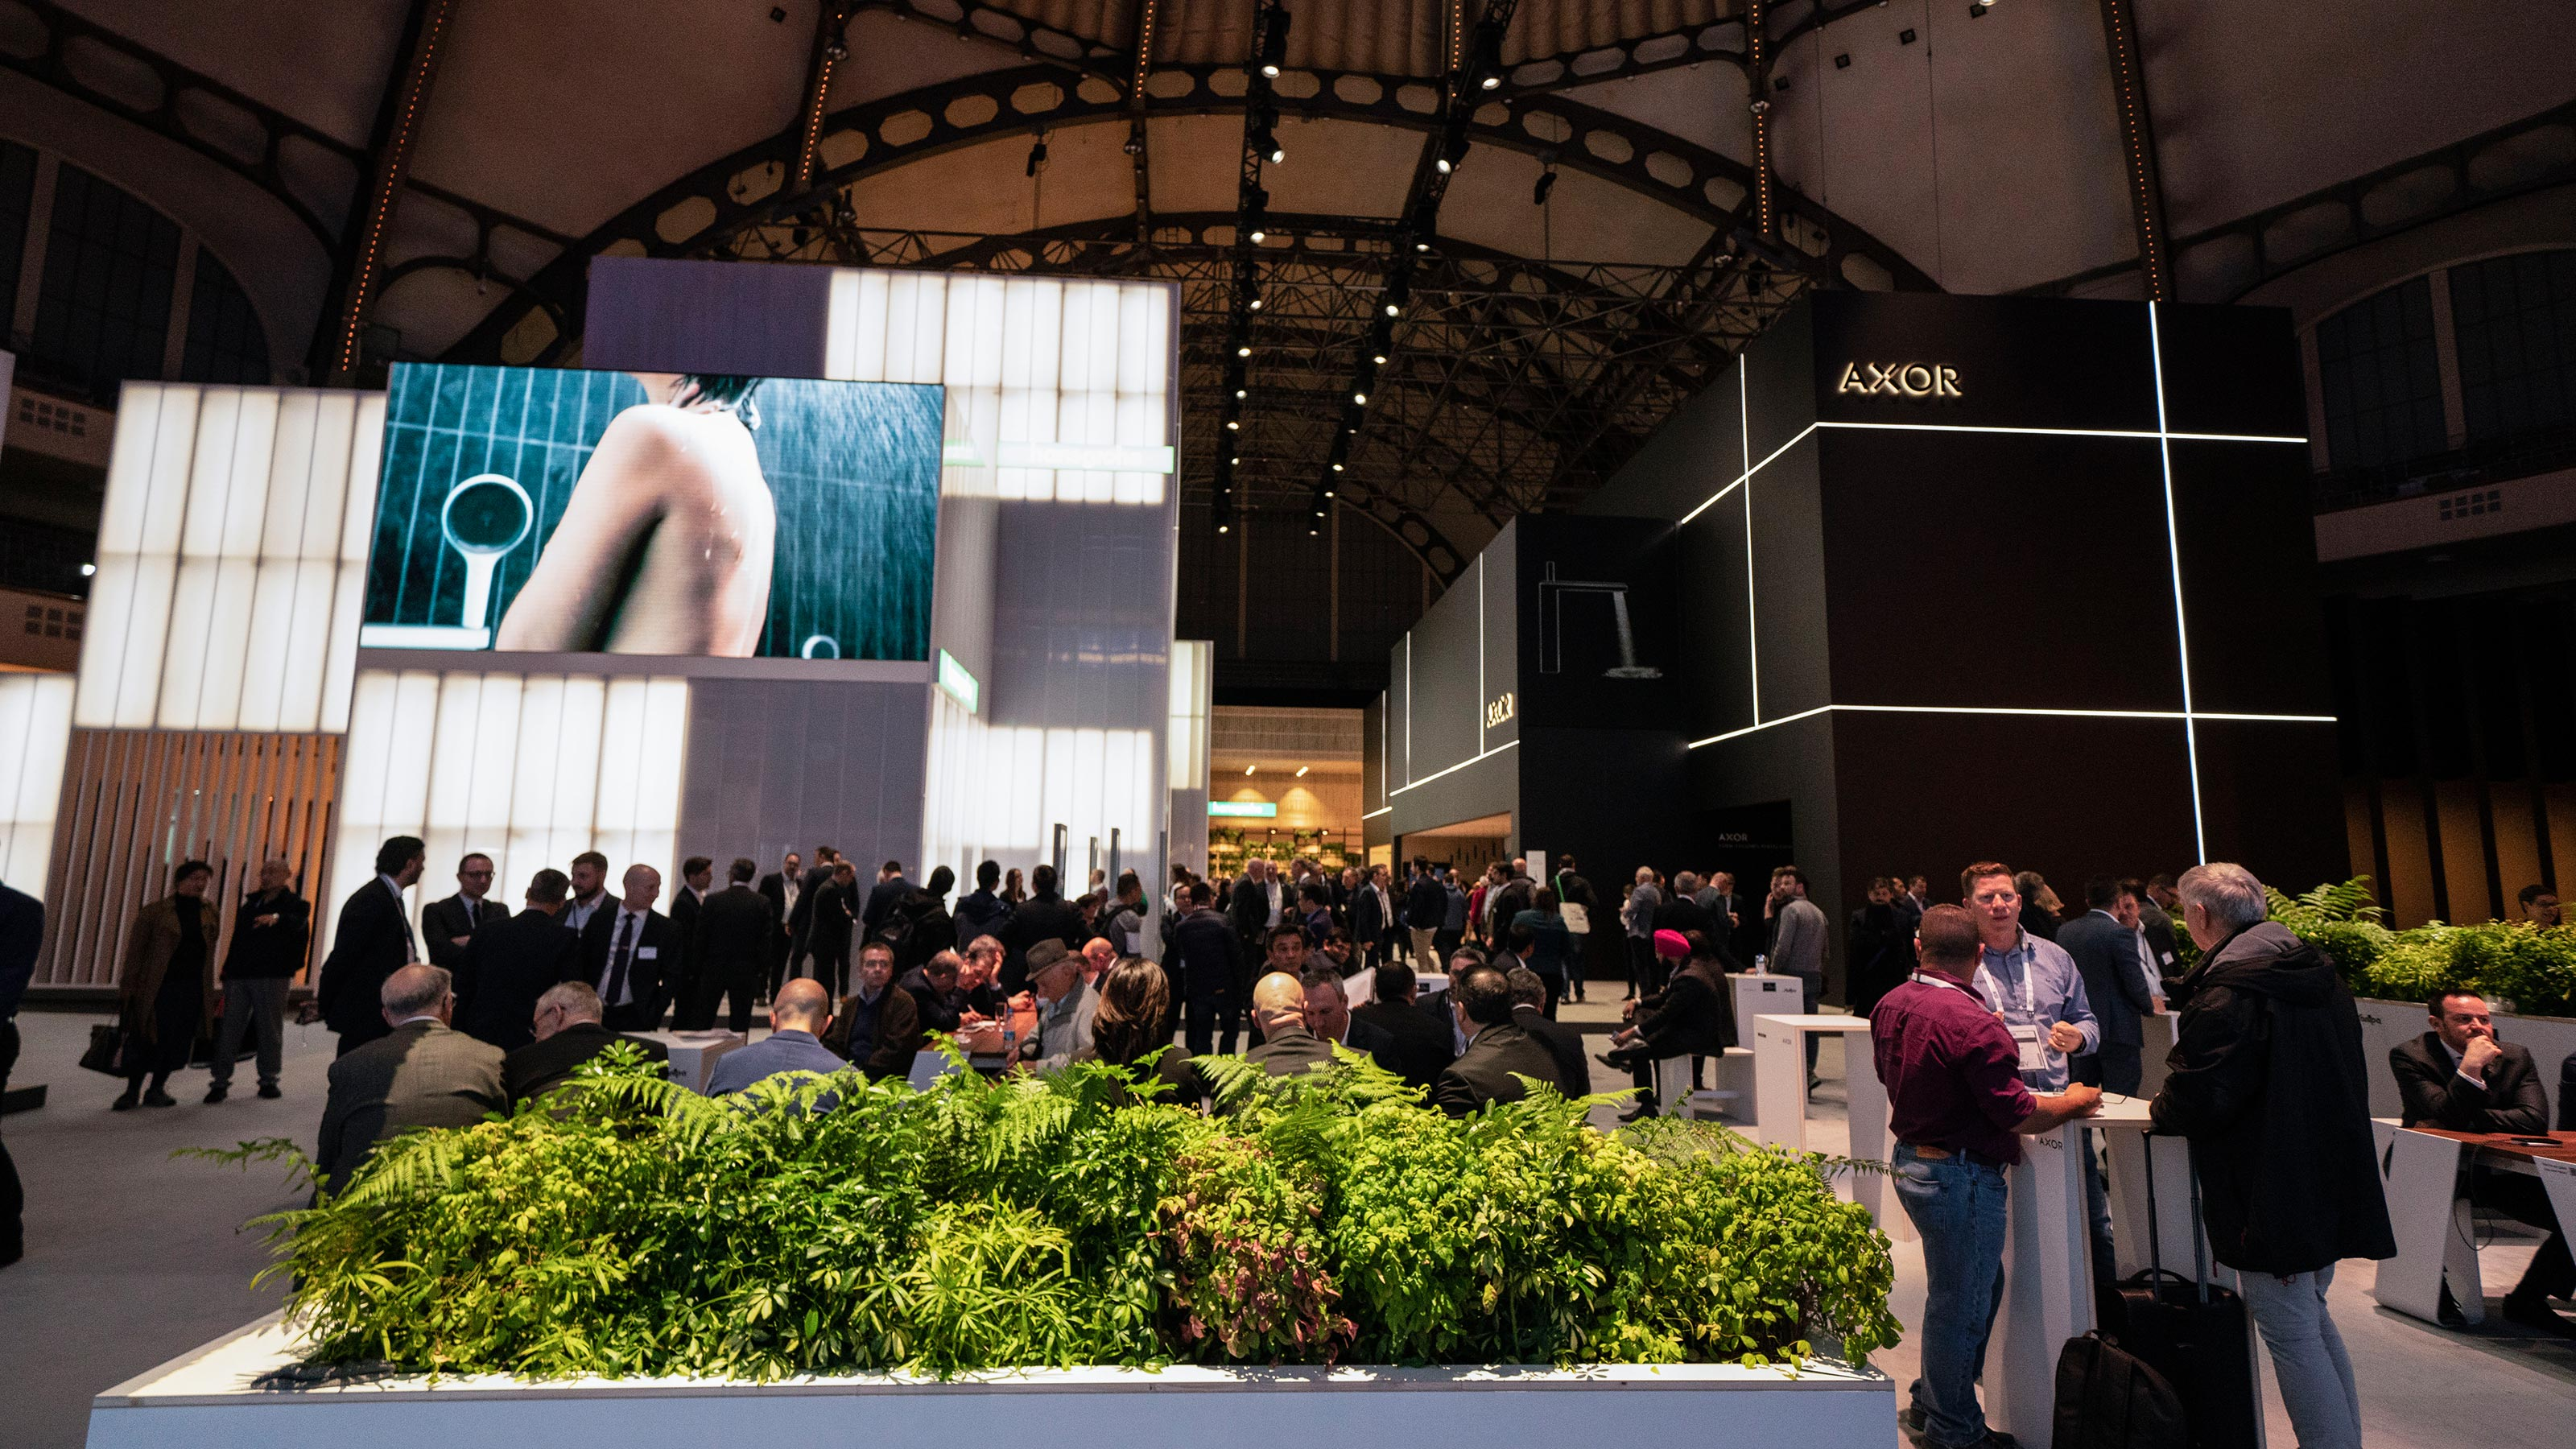 the axor and hansgrohe brands at a